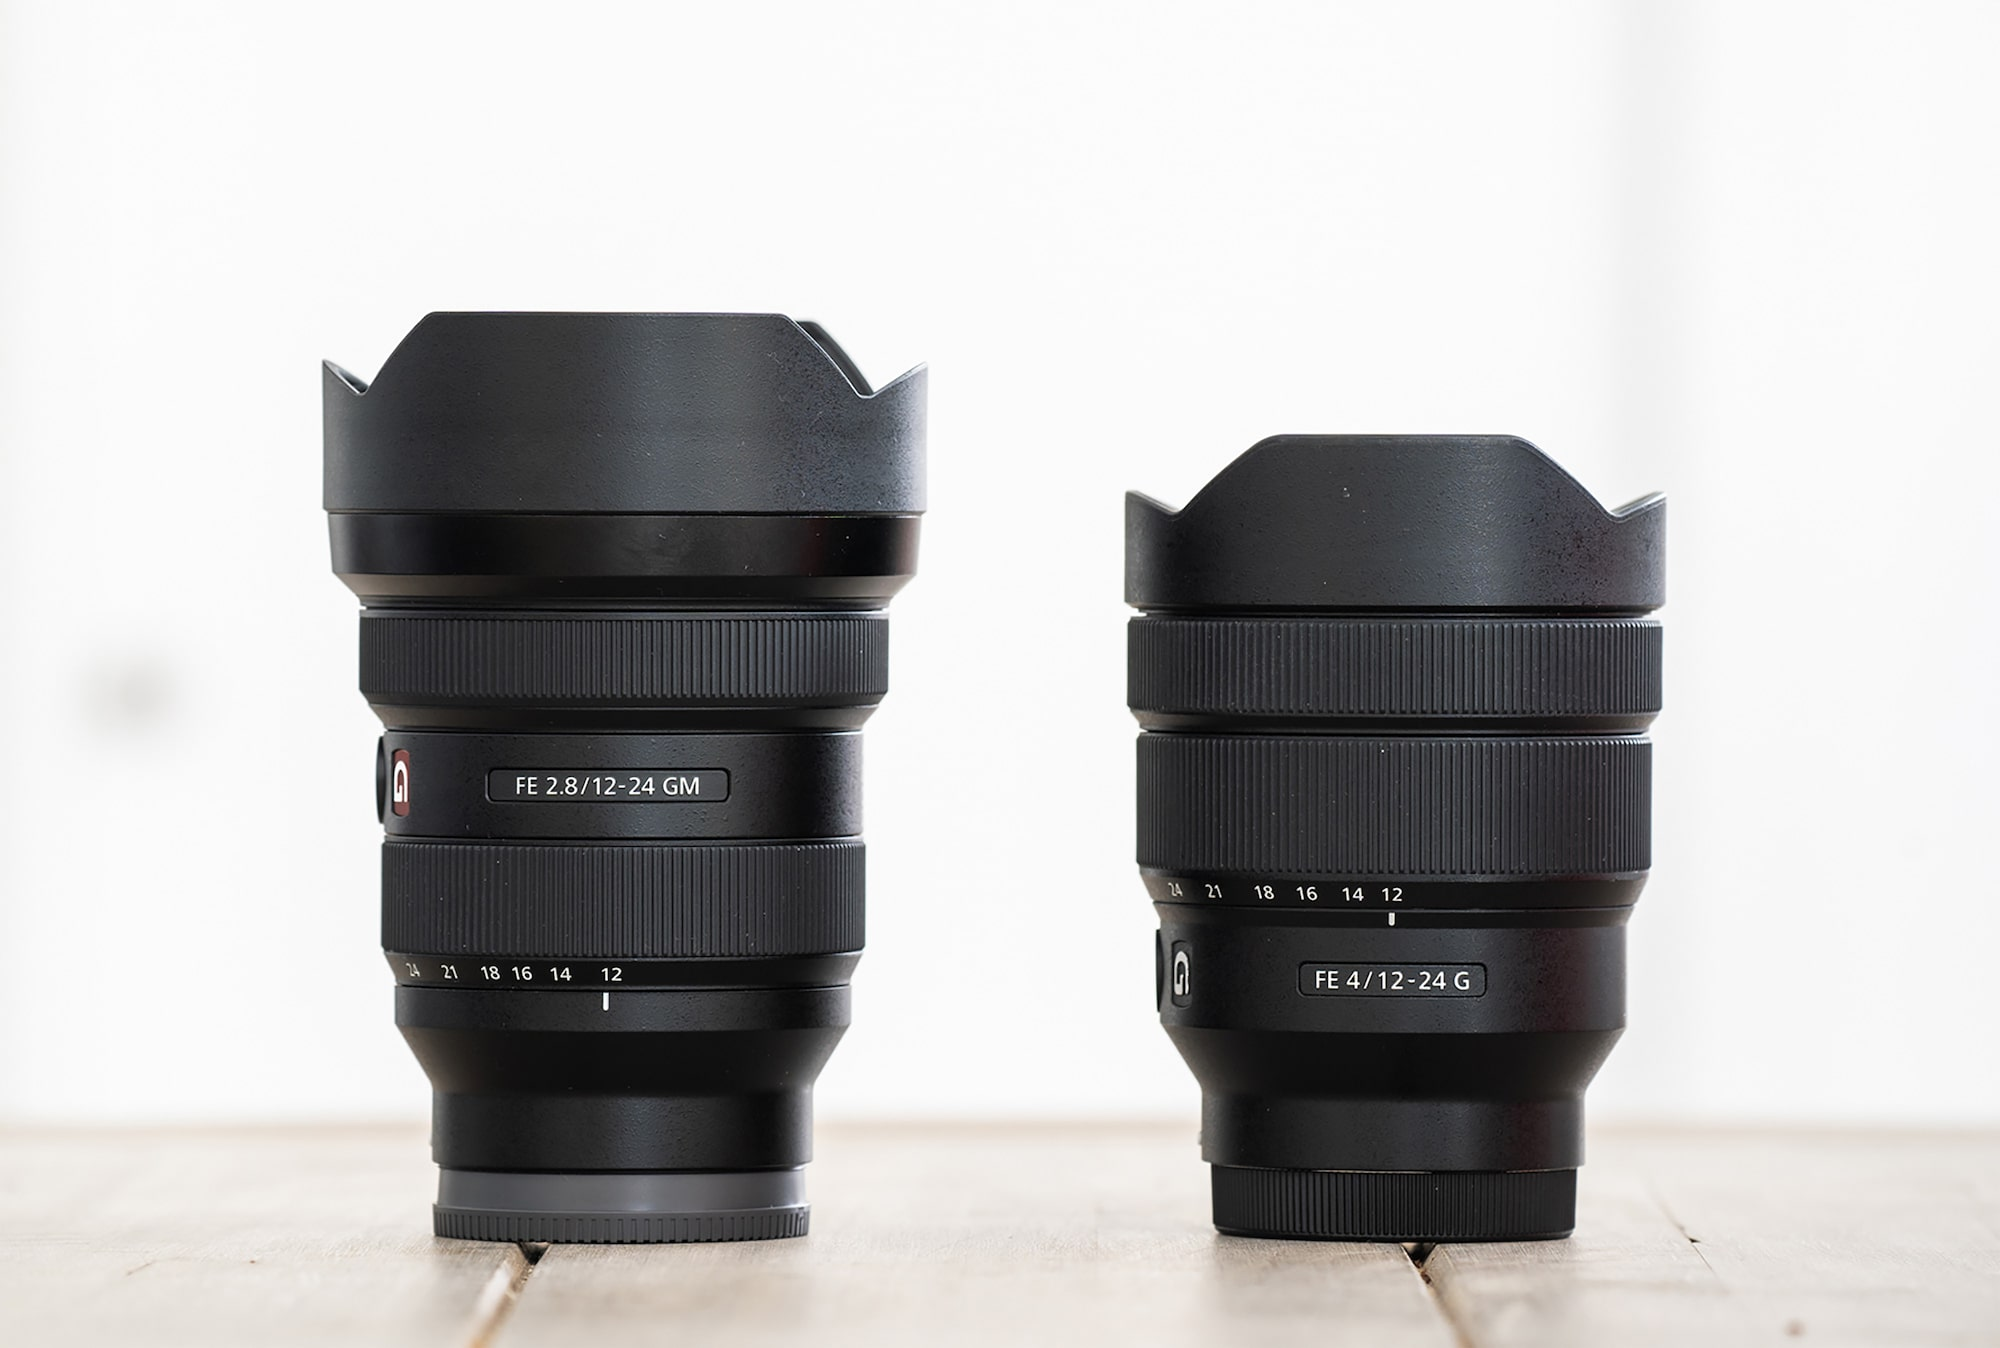 albert dros sony alpha 7RM3 sony FE1224GM alongside the sony FE 1224G for comparison